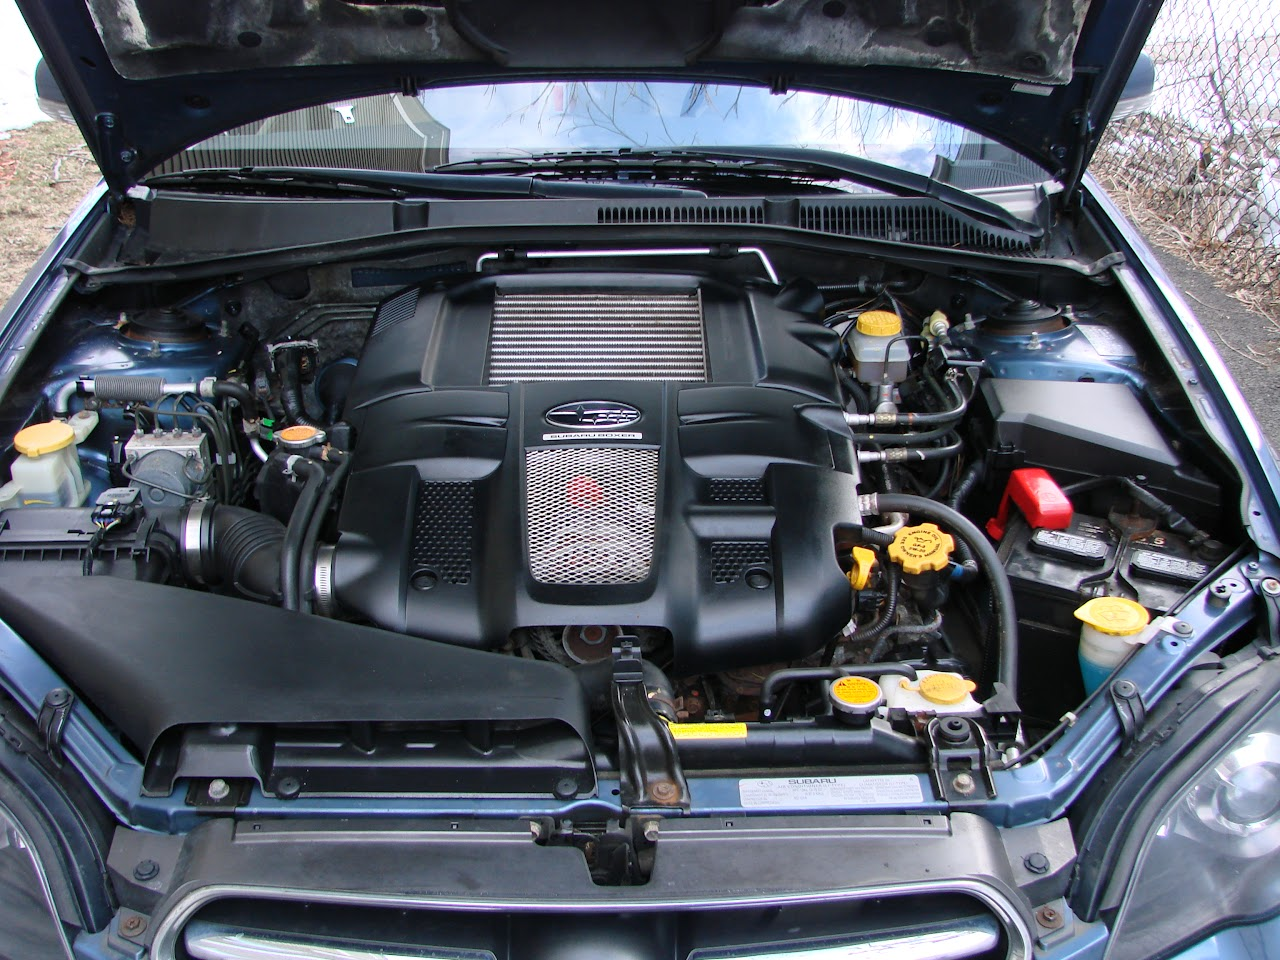 Show Me Your Engine Bay Pics - Page 9